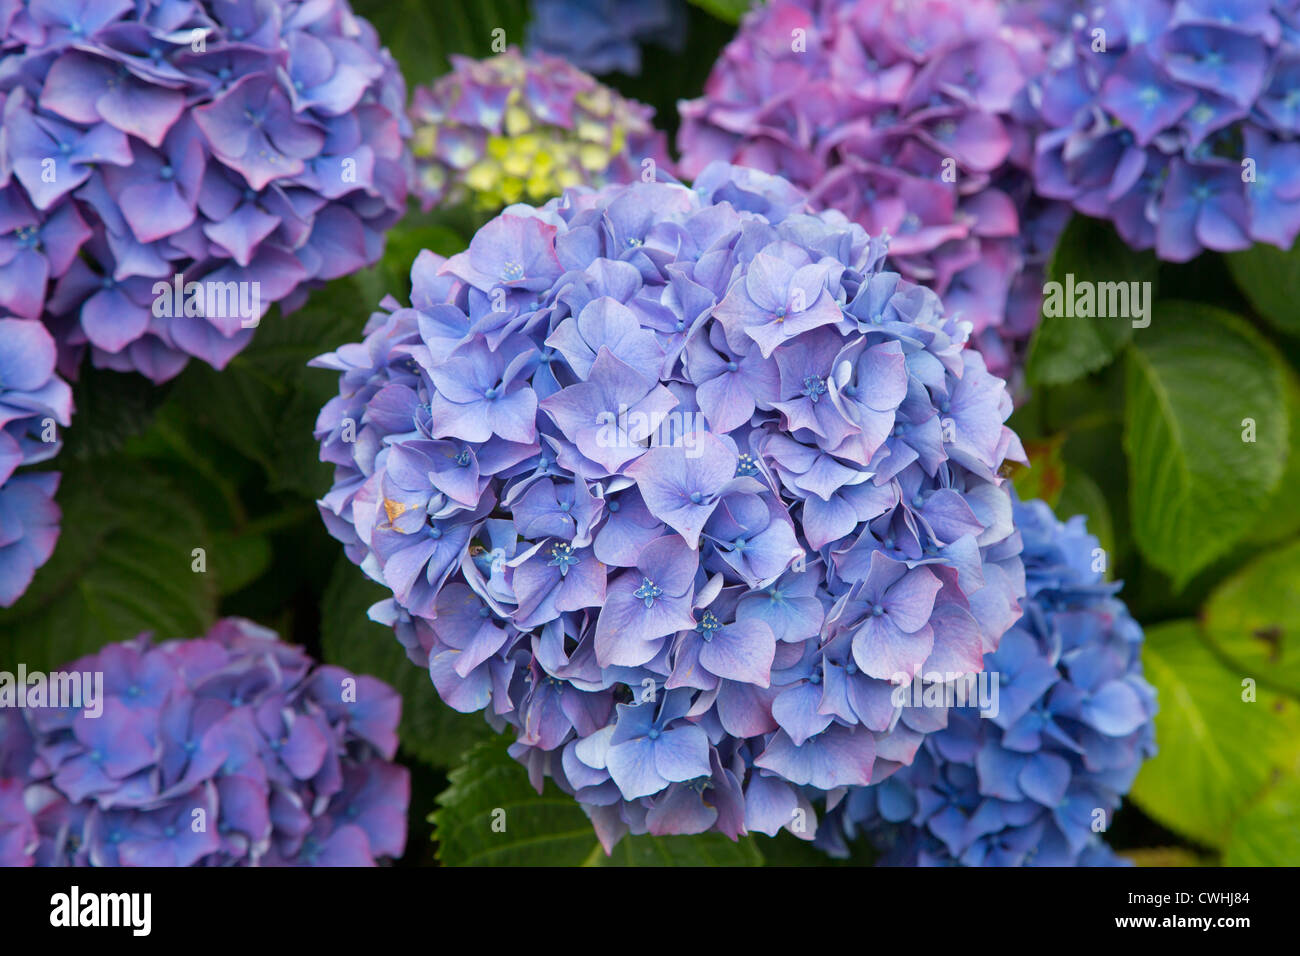 Hydrangea Uk Stock Photos & Hydrangea Uk Stock Images - Alamy